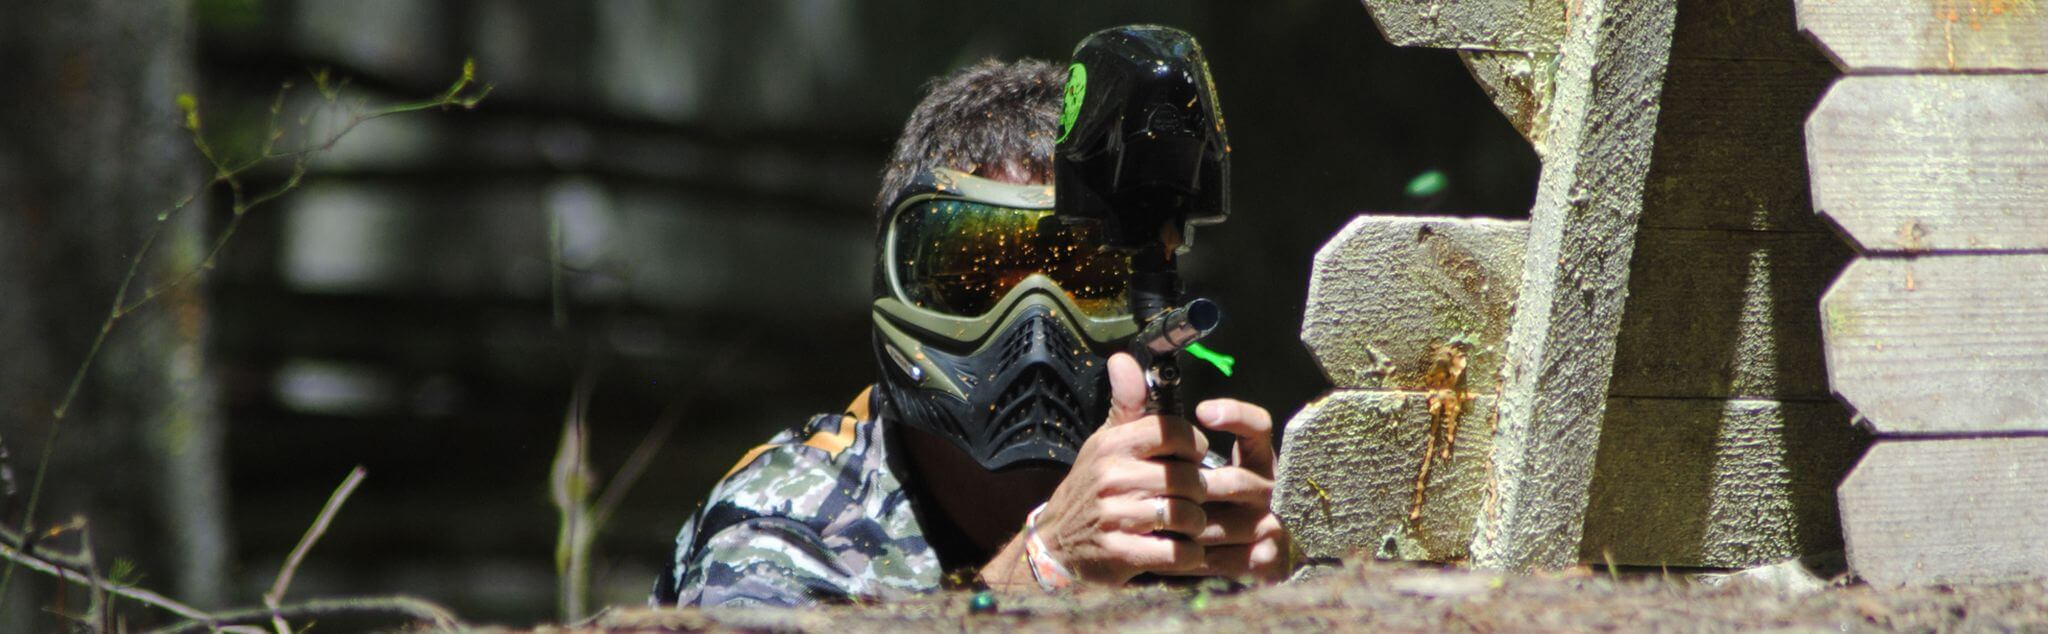 Paintball en Zaragoza (Ciudad)